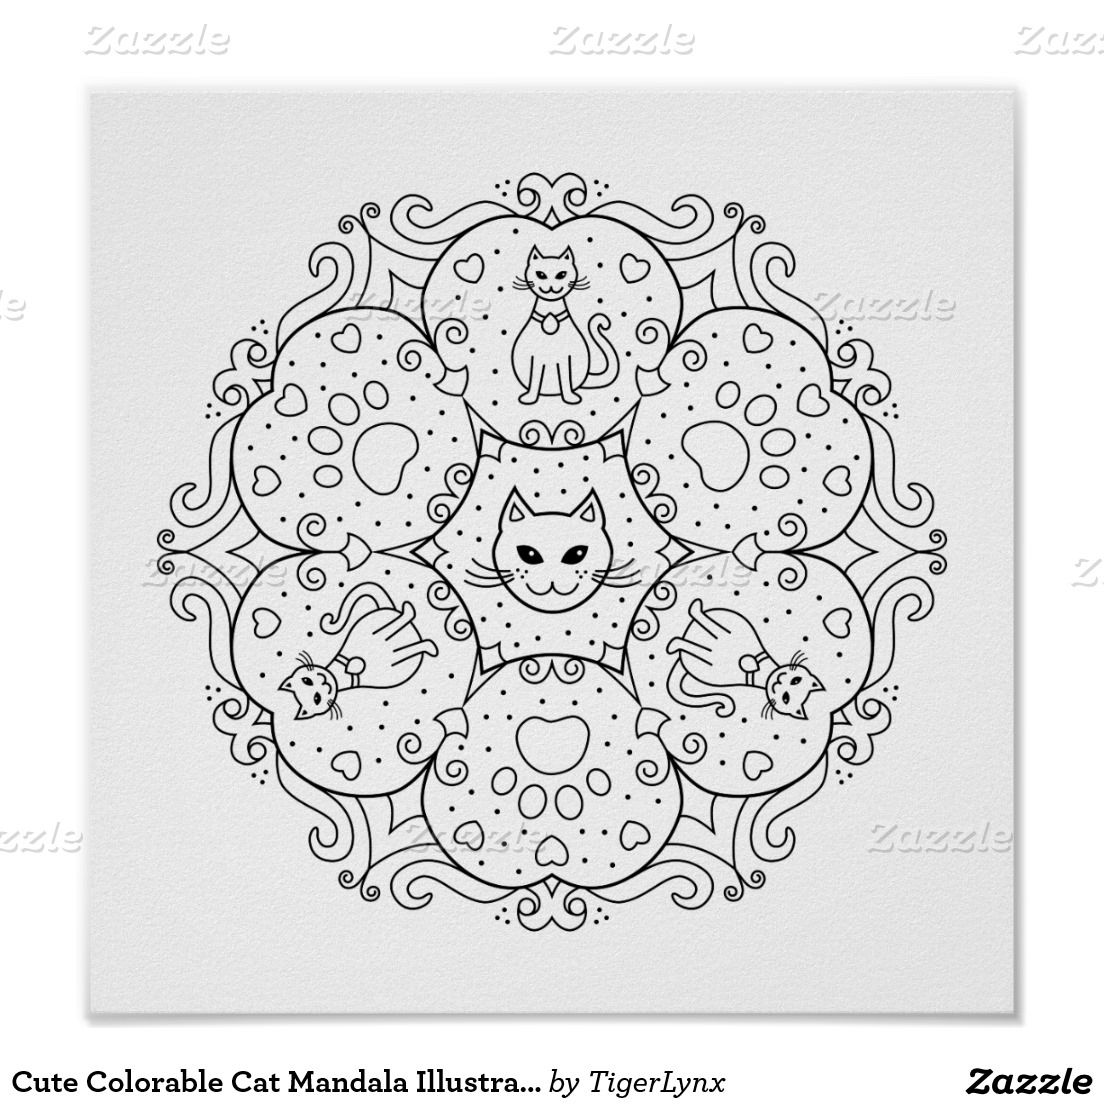 Zazzle poster design - Cute Colorable Cat Mandala Illustration Poster